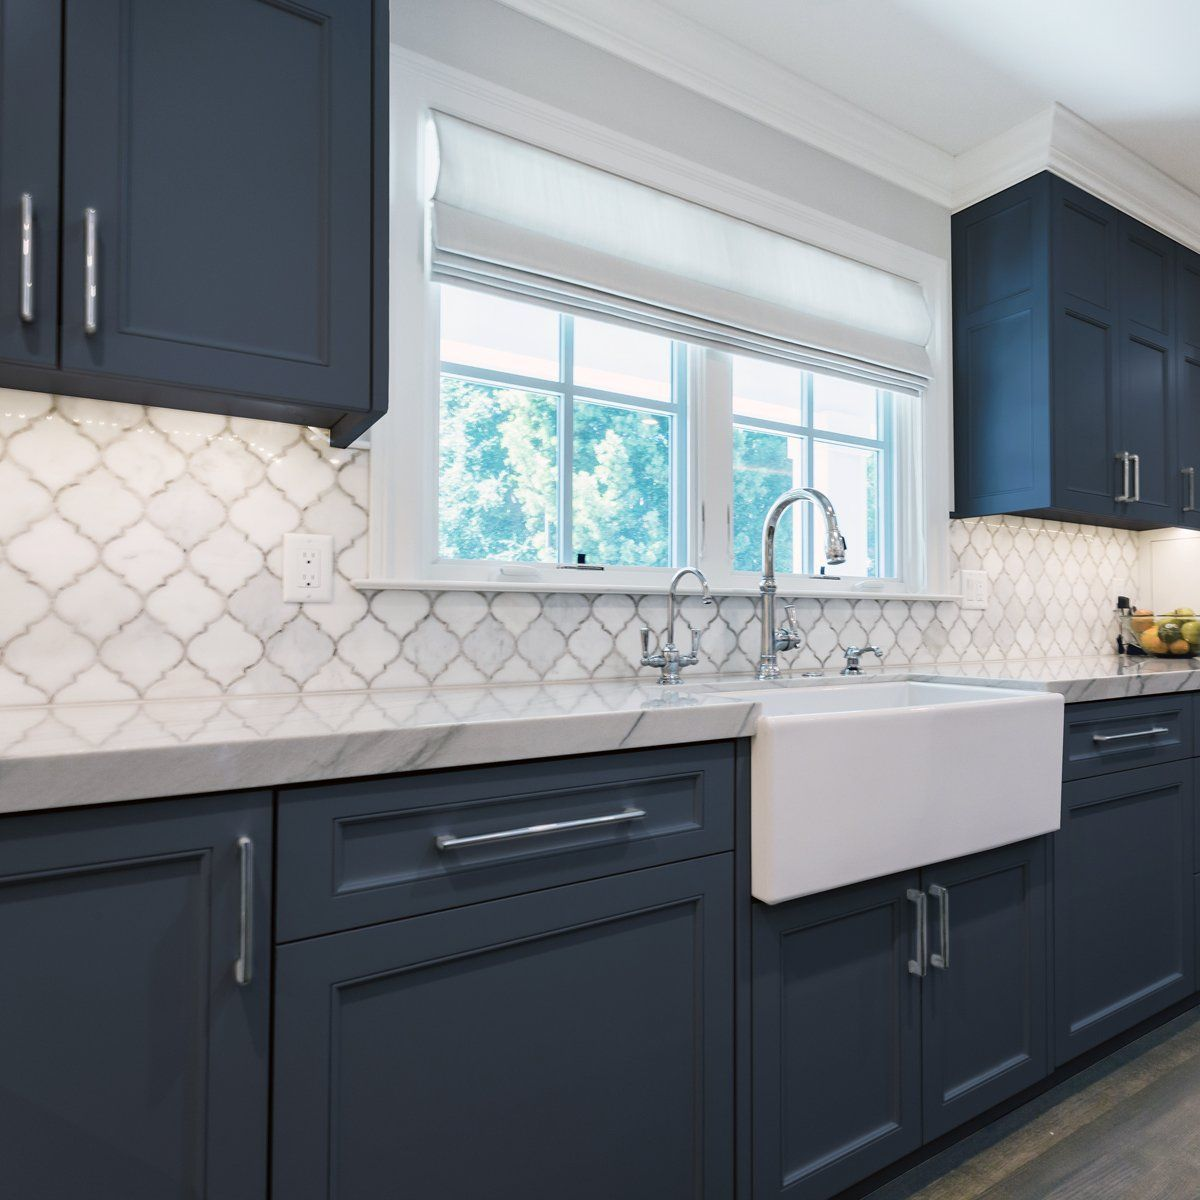 Nuvo Oxford Blue Cabinet Paint Kitchen Interior New Kitchen Cabinets Home Decor Kitchen